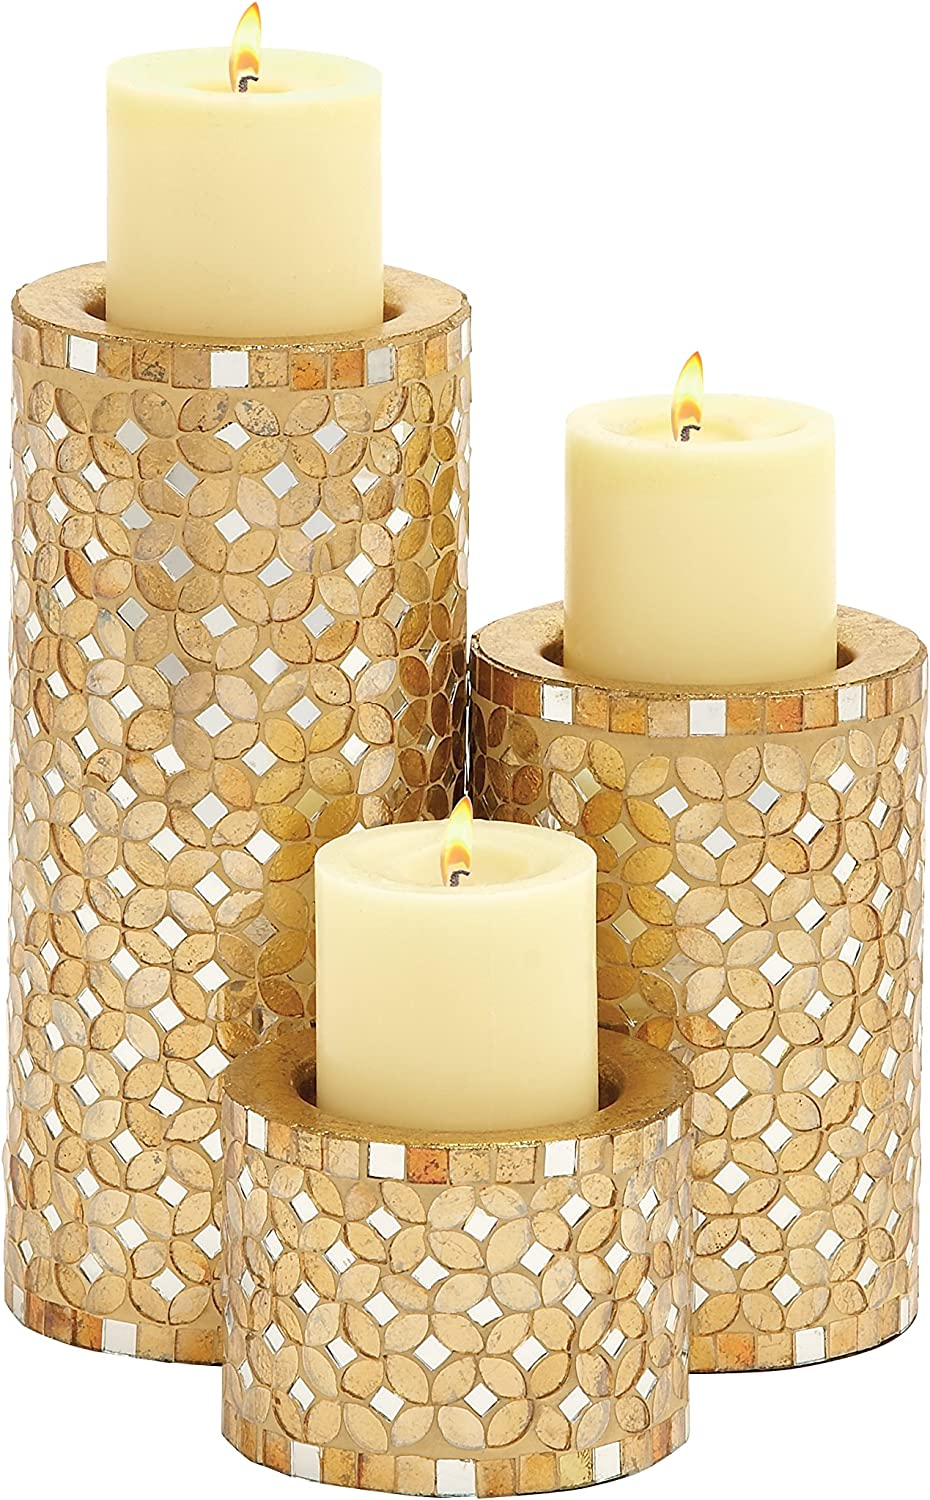 National products Deco 79 23897 Metal Mosaic Candle Holder 3 of H Set Translated 11